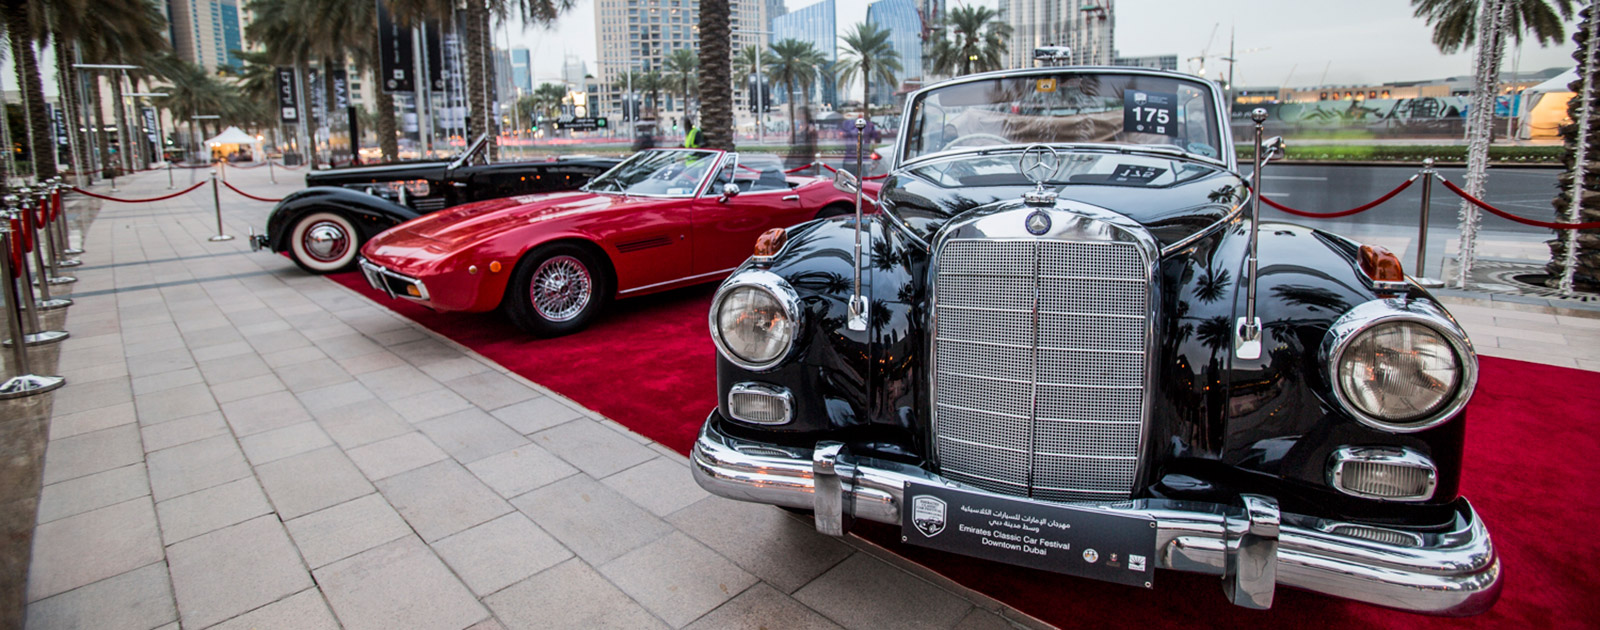 Get UAE Deals: Emirates Classic Cars Festival march 2016 Downtown Dubai